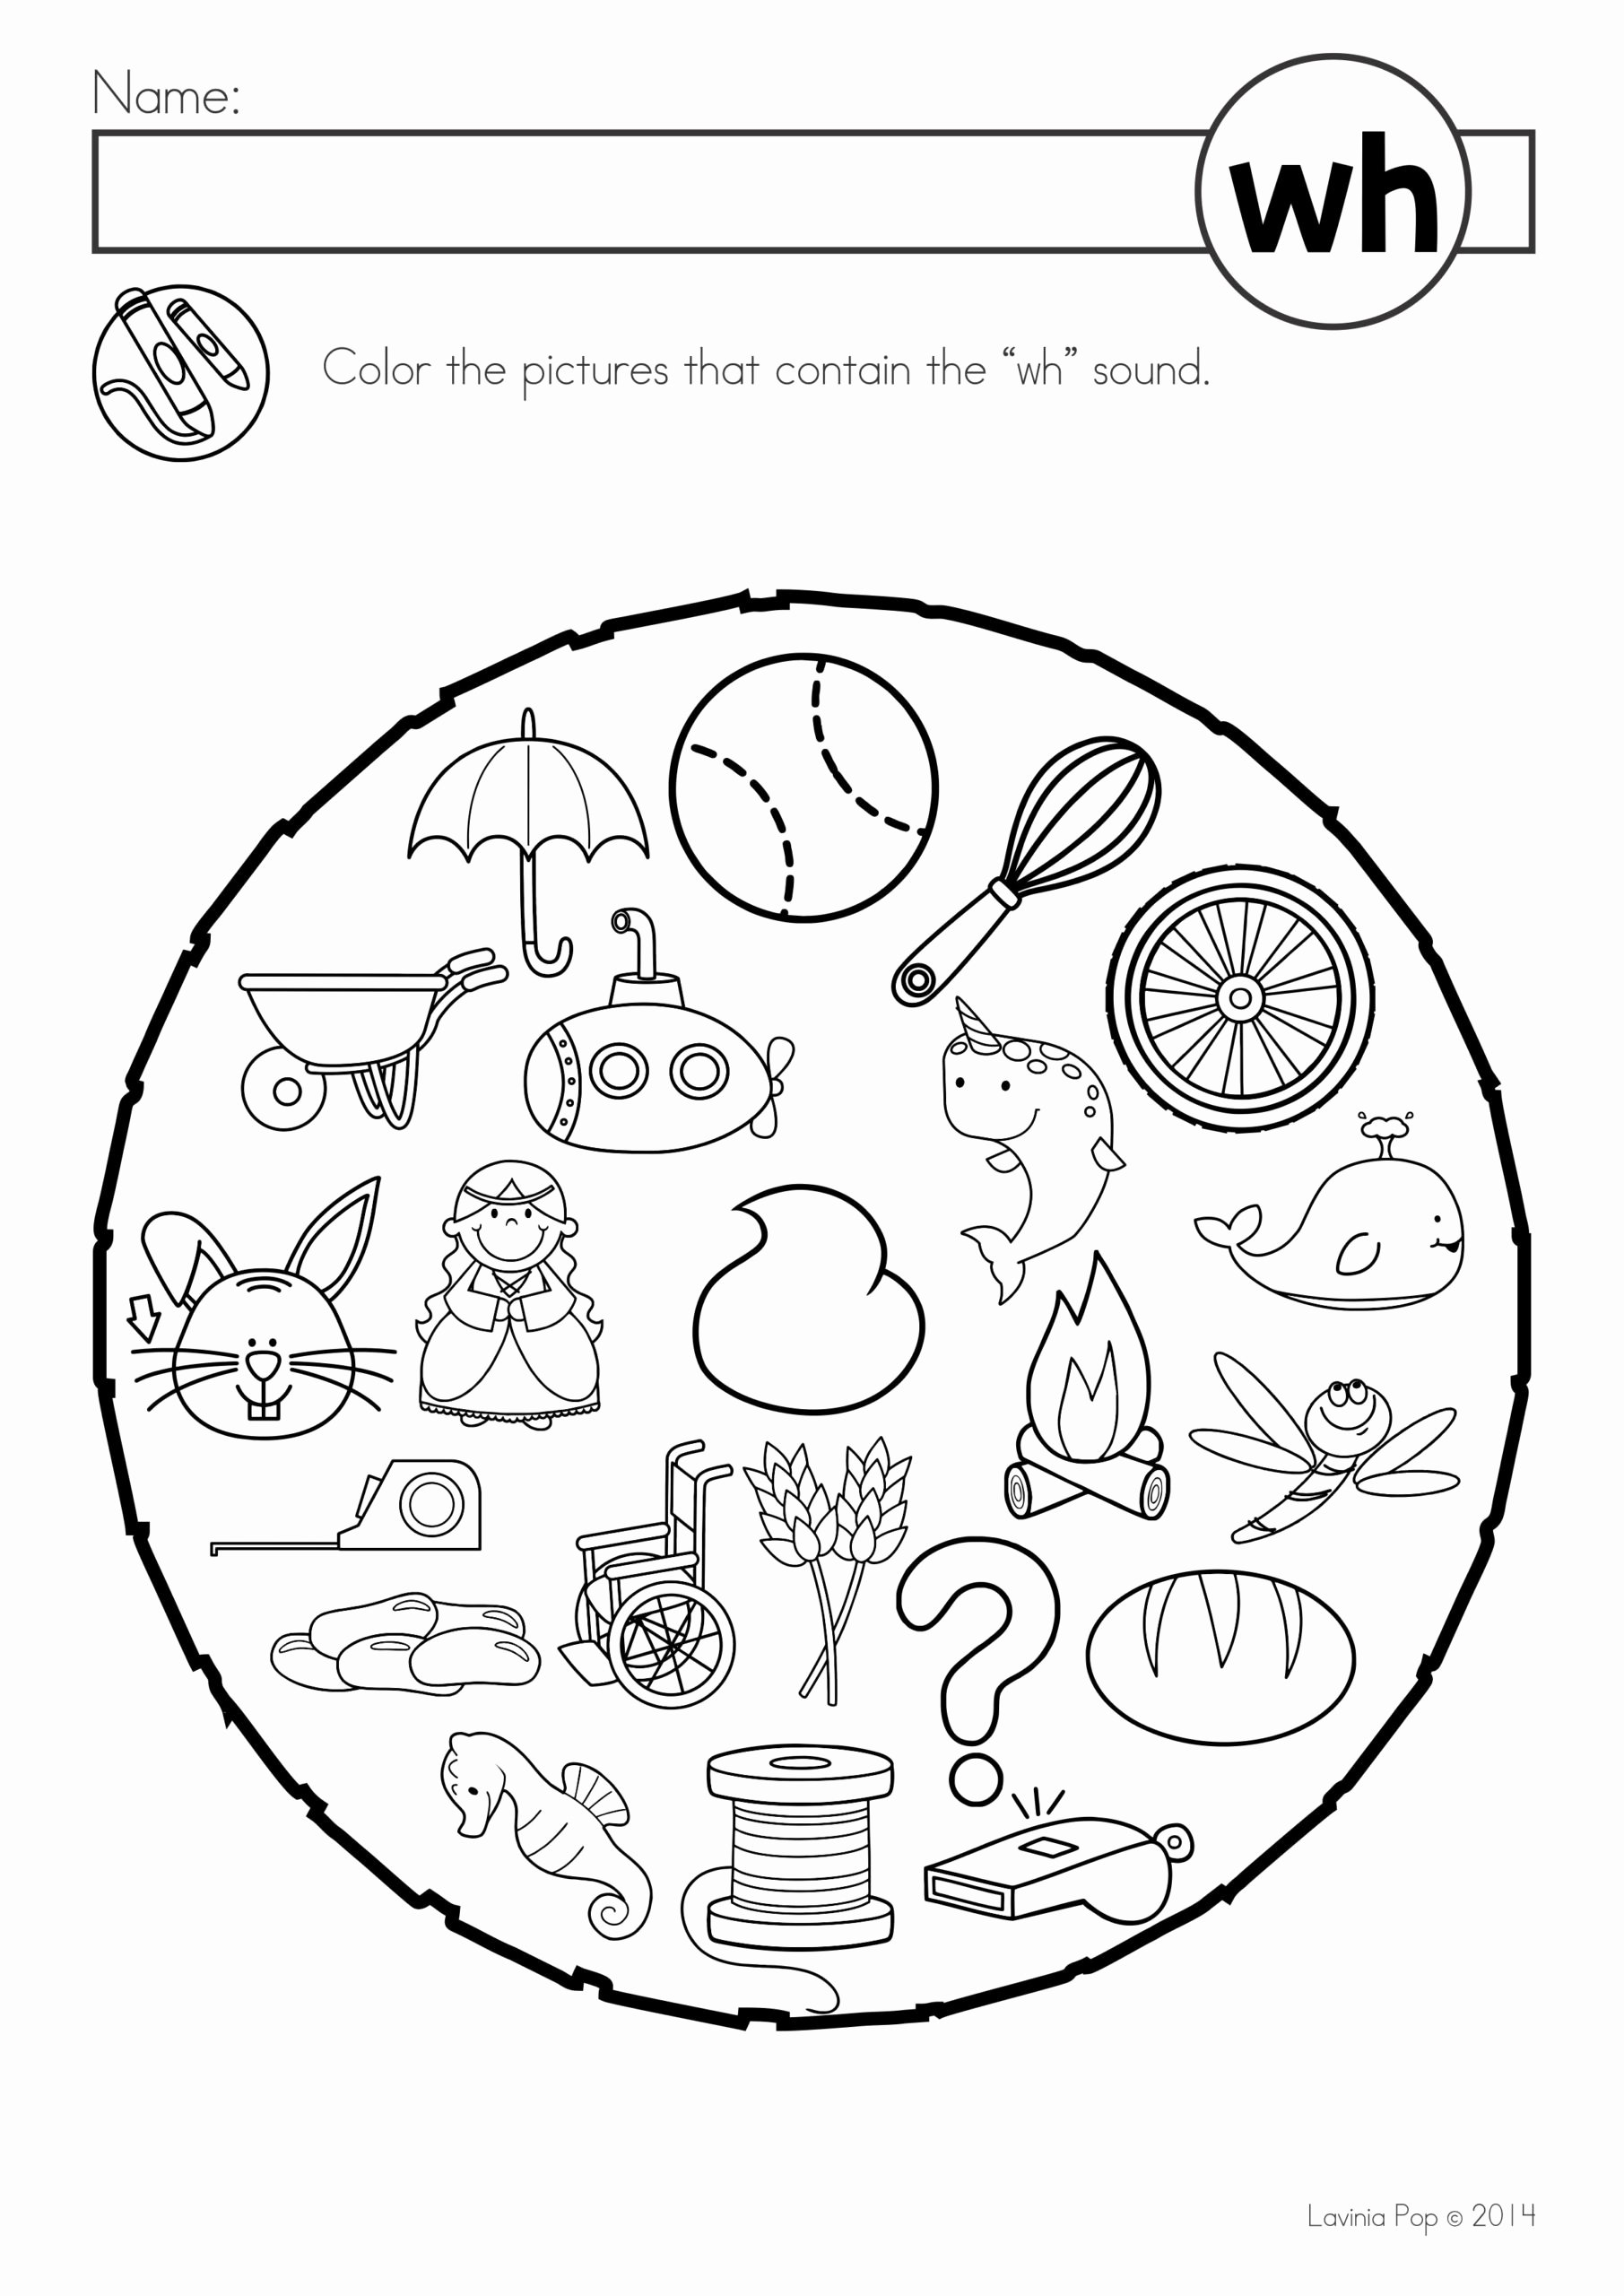 Association Worksheets for Preschoolers top Free Digraph Wh Phonics Word Work Multiple Phonograms